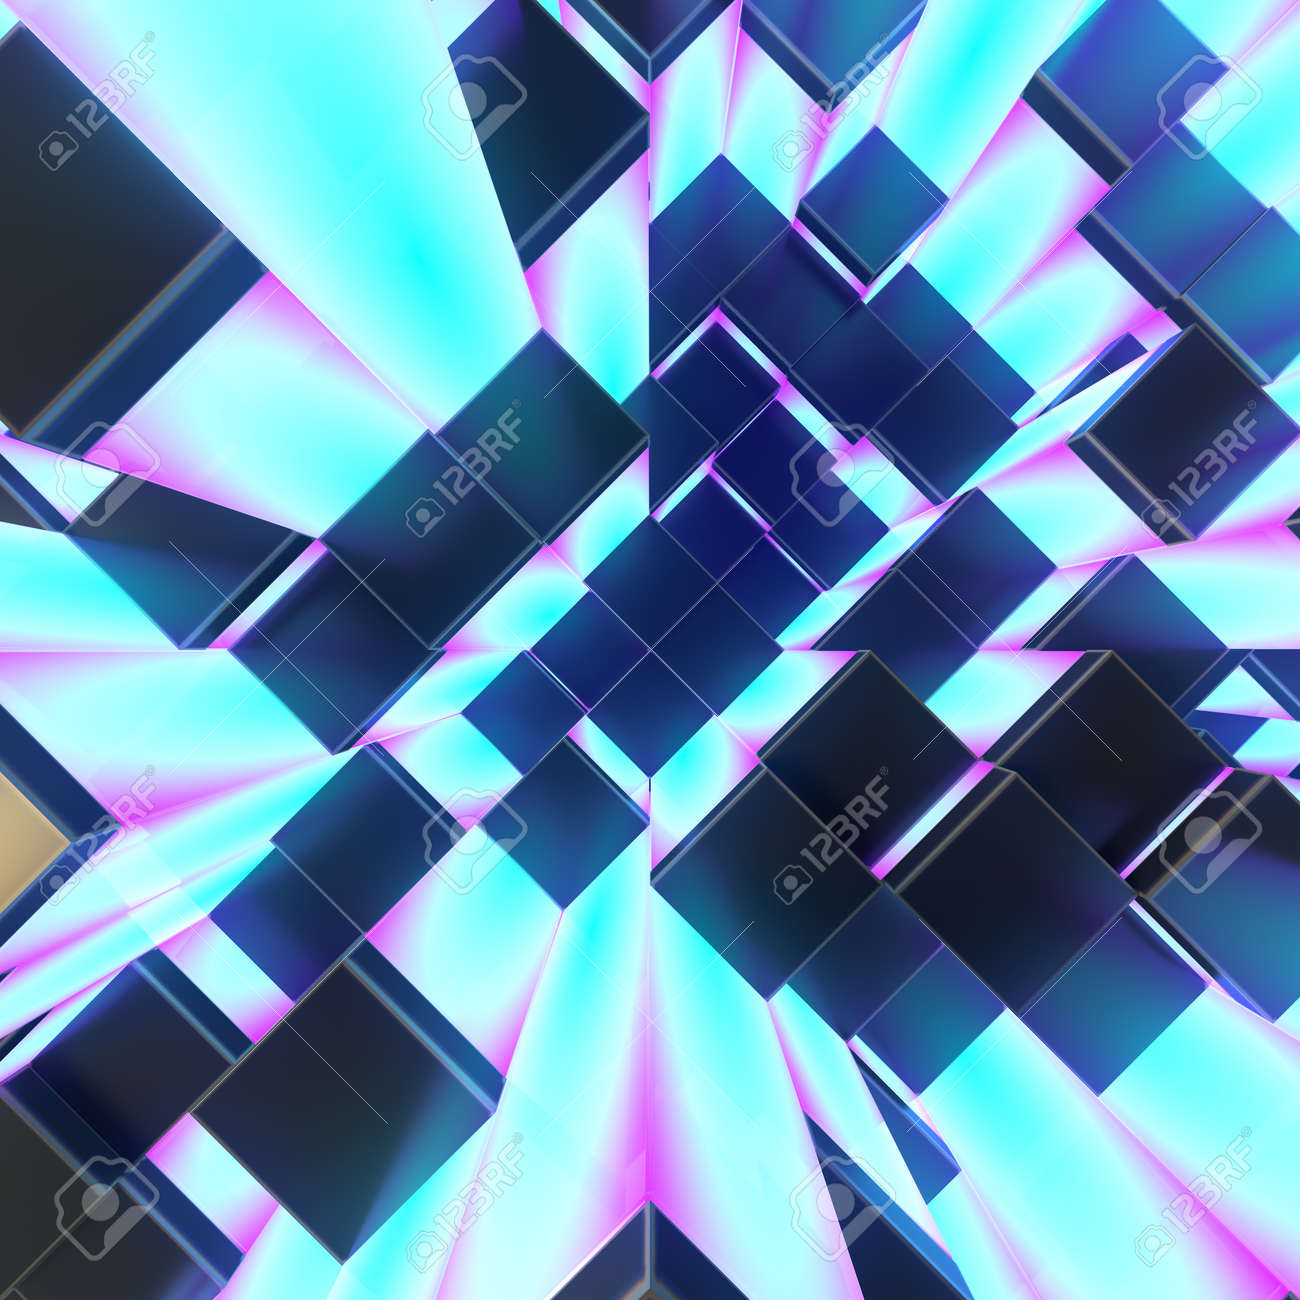 abstract yellow glowing cubes background 3d render illustration